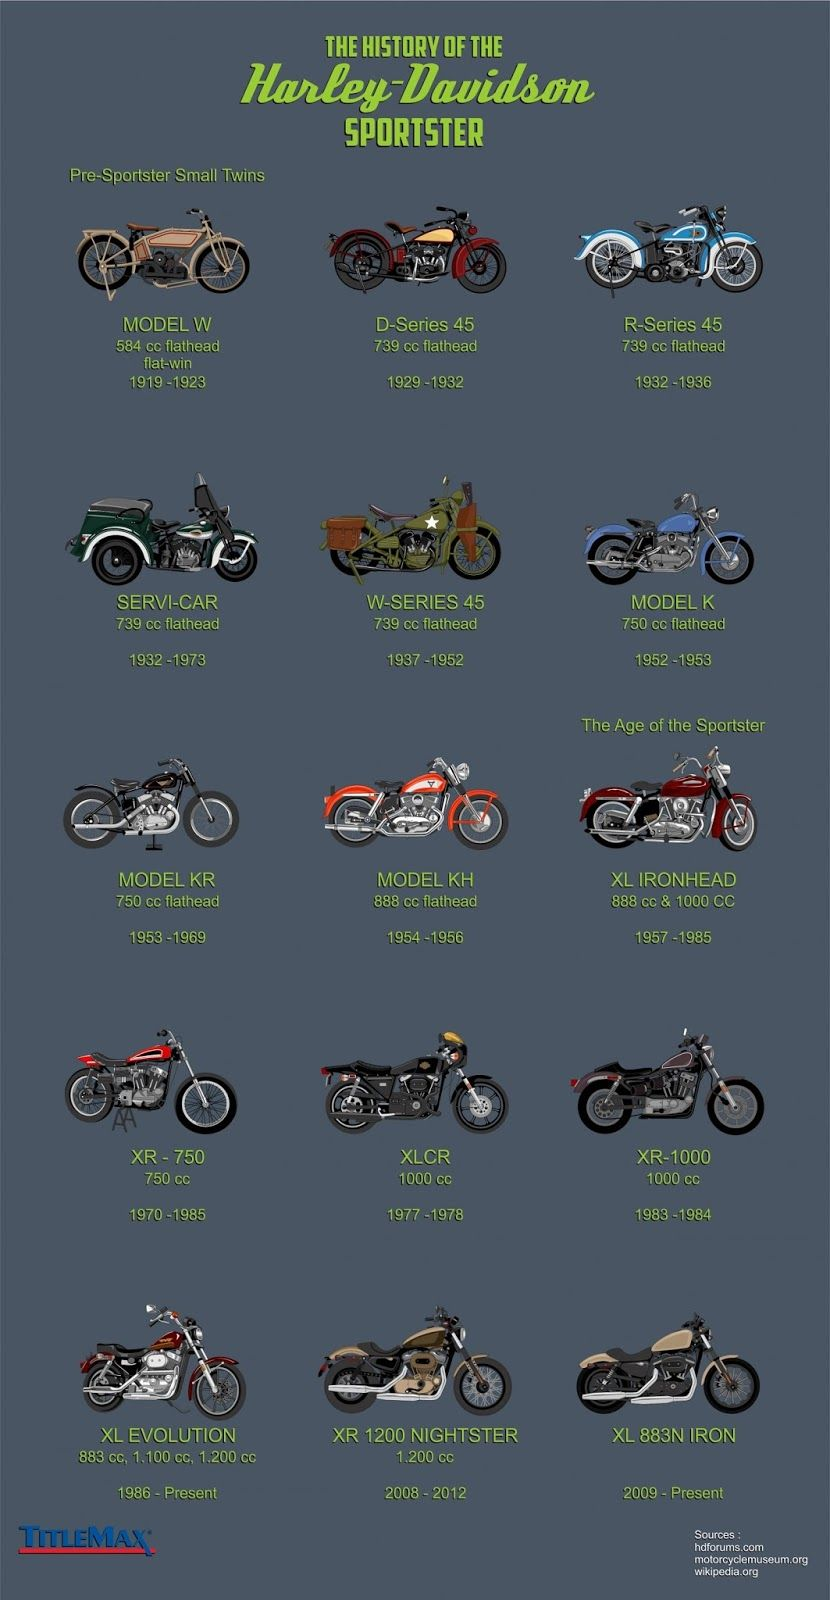 Pin by Sean Coker on air-cooled motorcycles | Harley